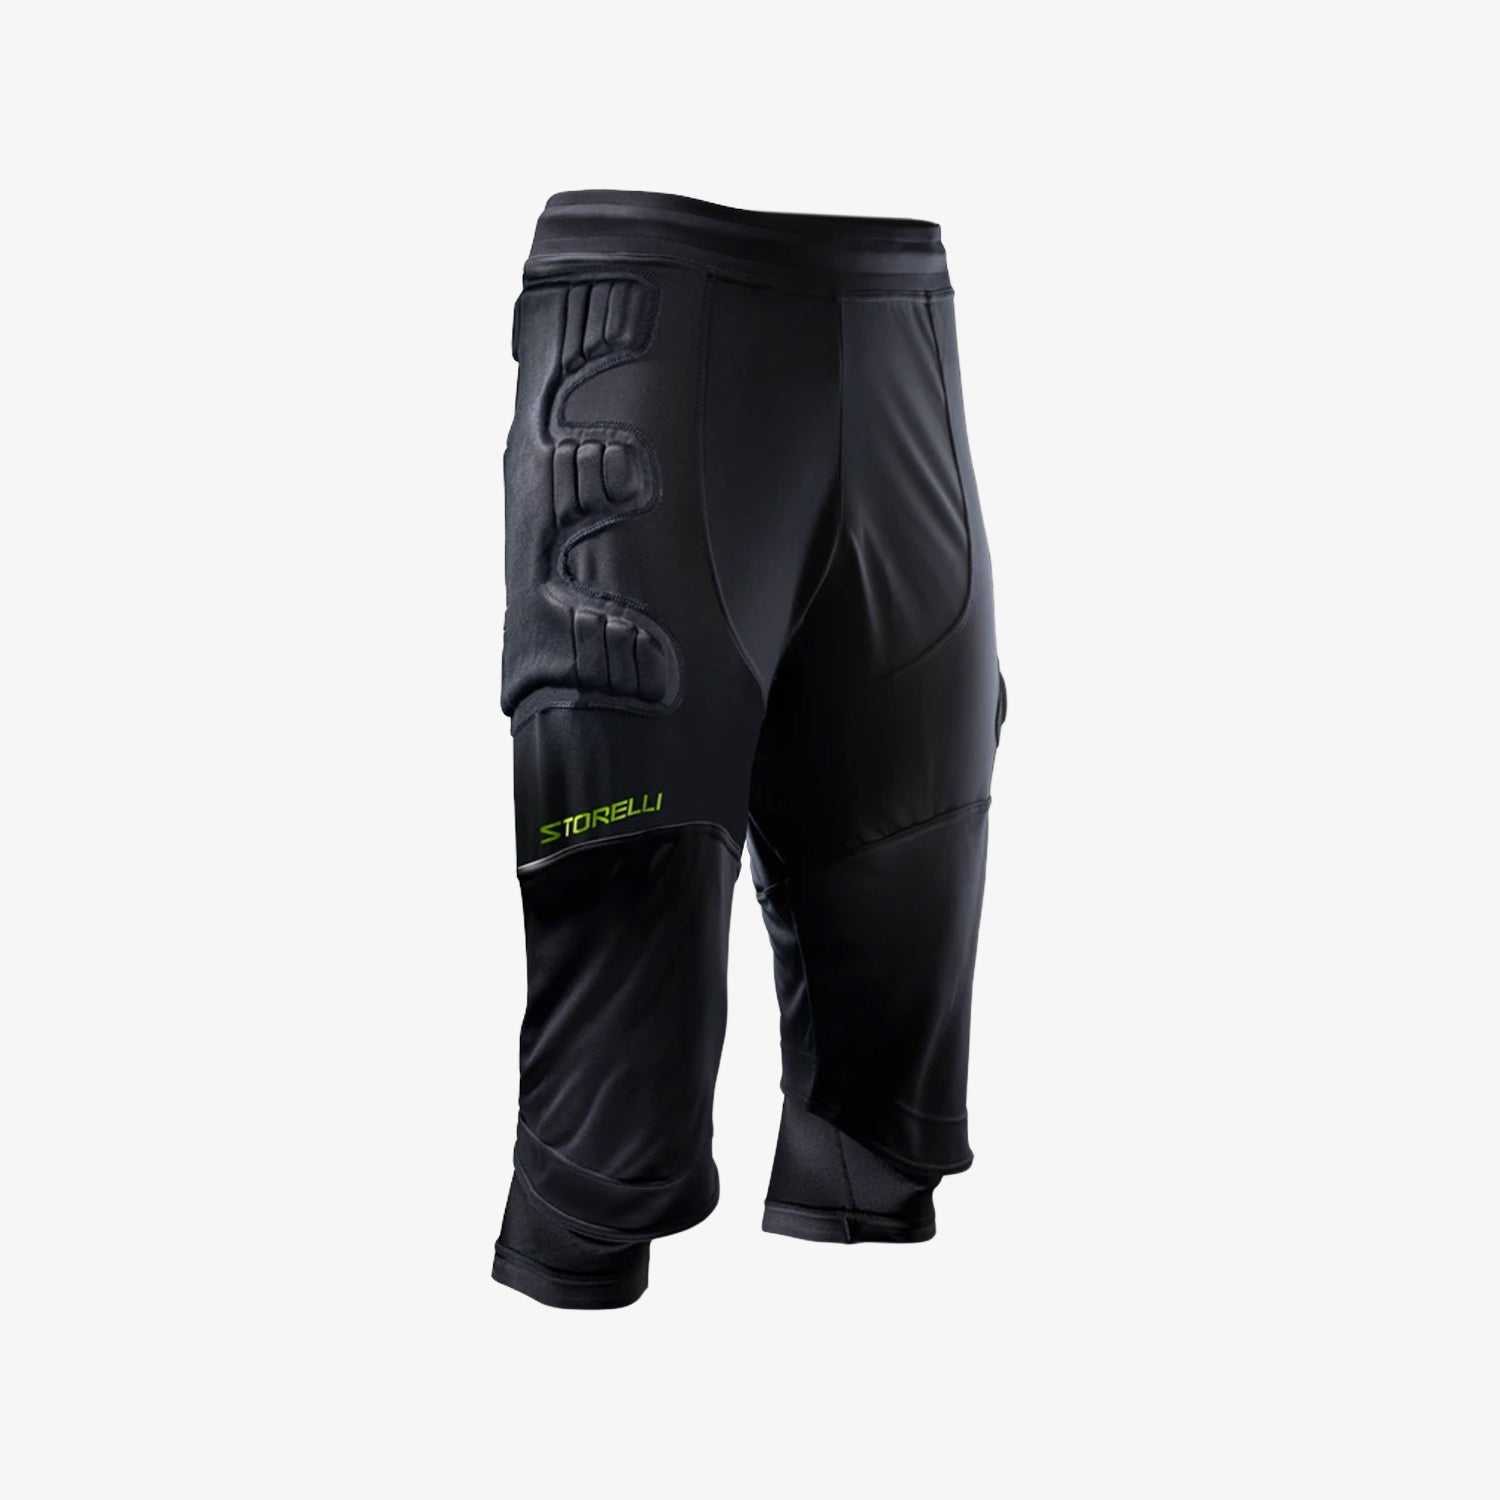 ExoShield Goalkeeper 3/4 Pant Men's